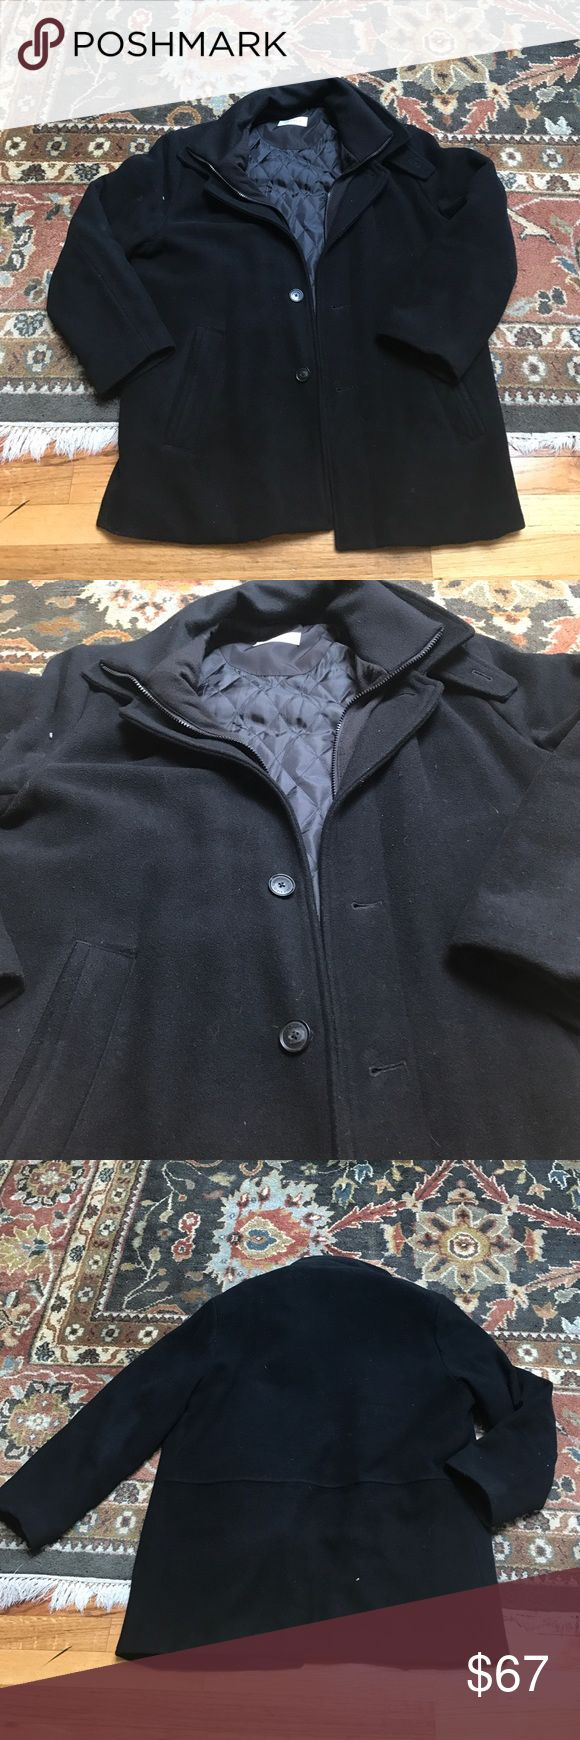 Calvin Klein Men's Peacoat Barely worn. Needs a good lint rolling from being in storage. Zips and buttons up the front. Satin lined. Heavy cotton collar. No good. Size 42S. Two inner pockets. Calvin Klein Jackets & Coats Pea Coats